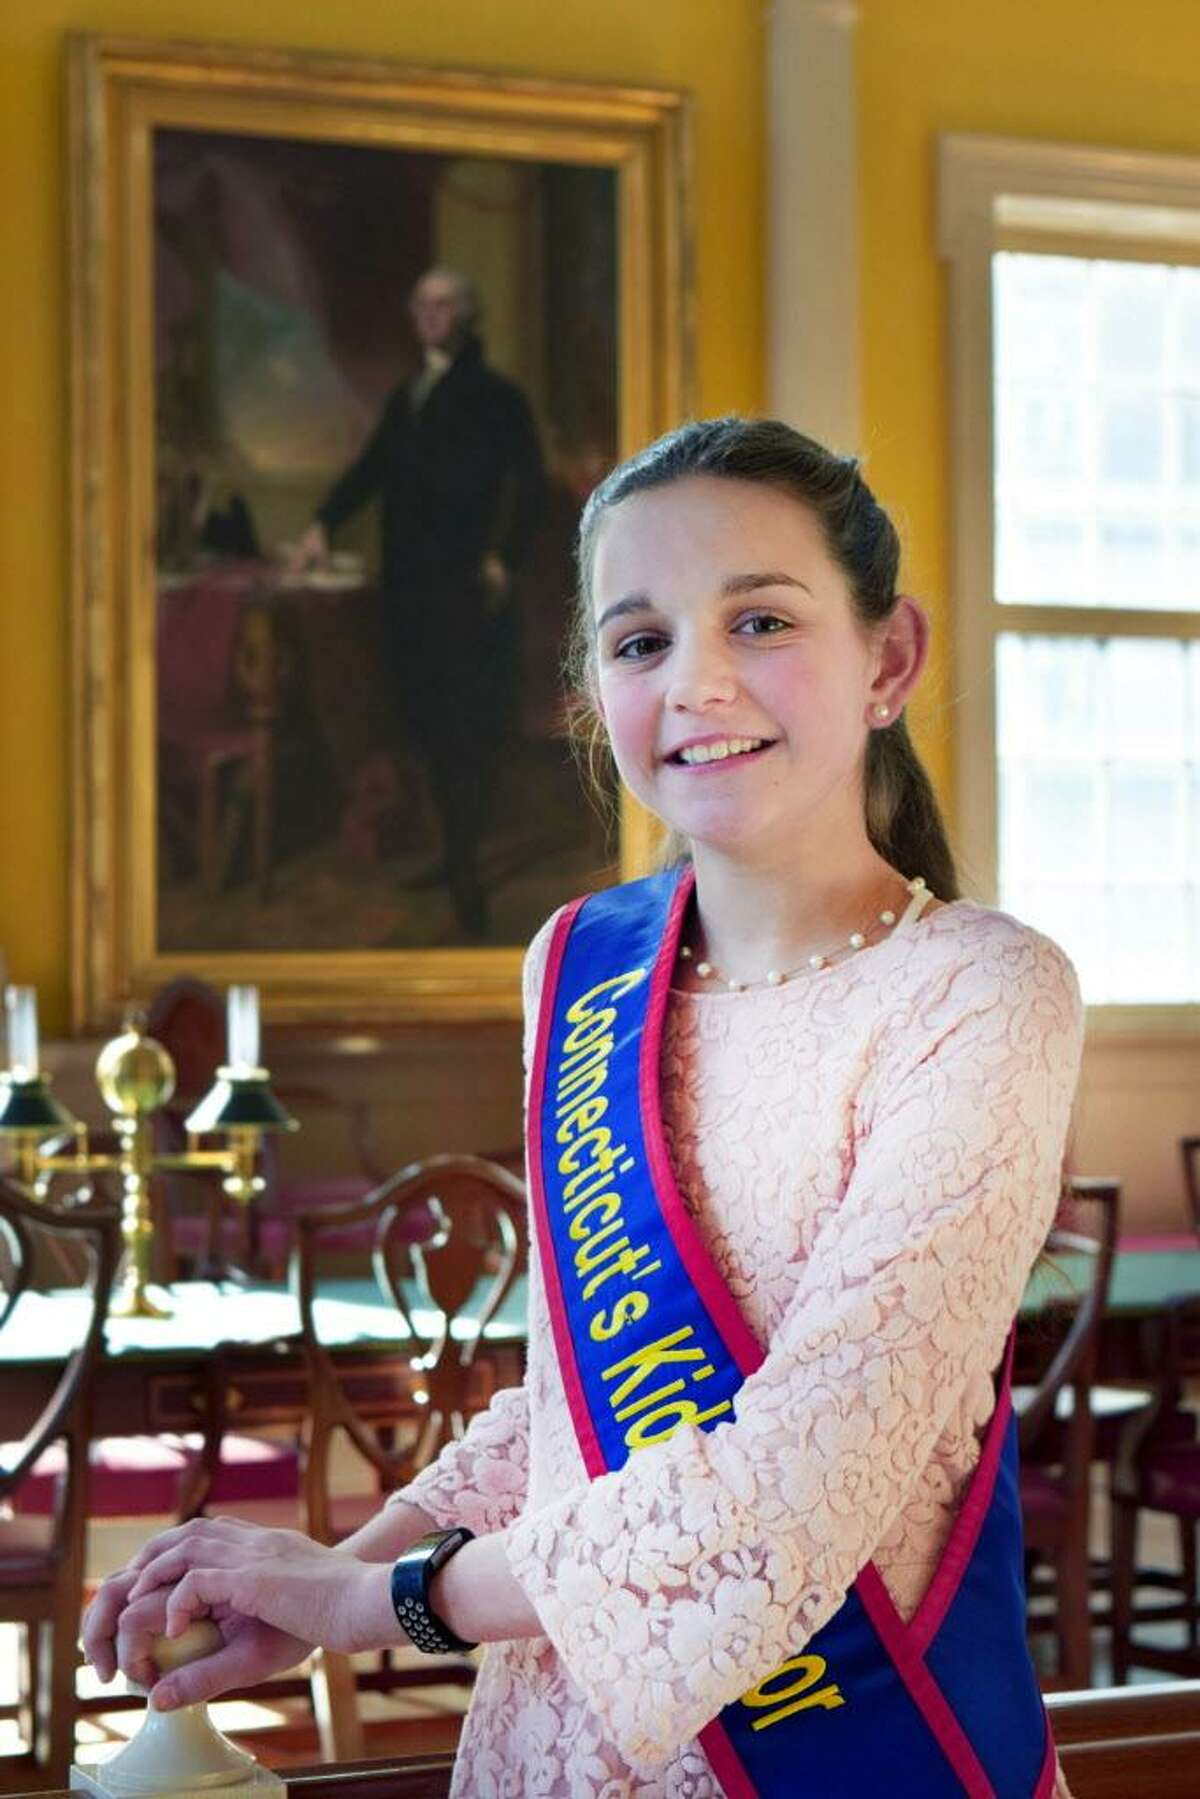 Megan Kasperowski from Brownstone Intermediate School in Portland was elected by fifth-graders statewide as the 2018 Connecticut's Kid Governor.